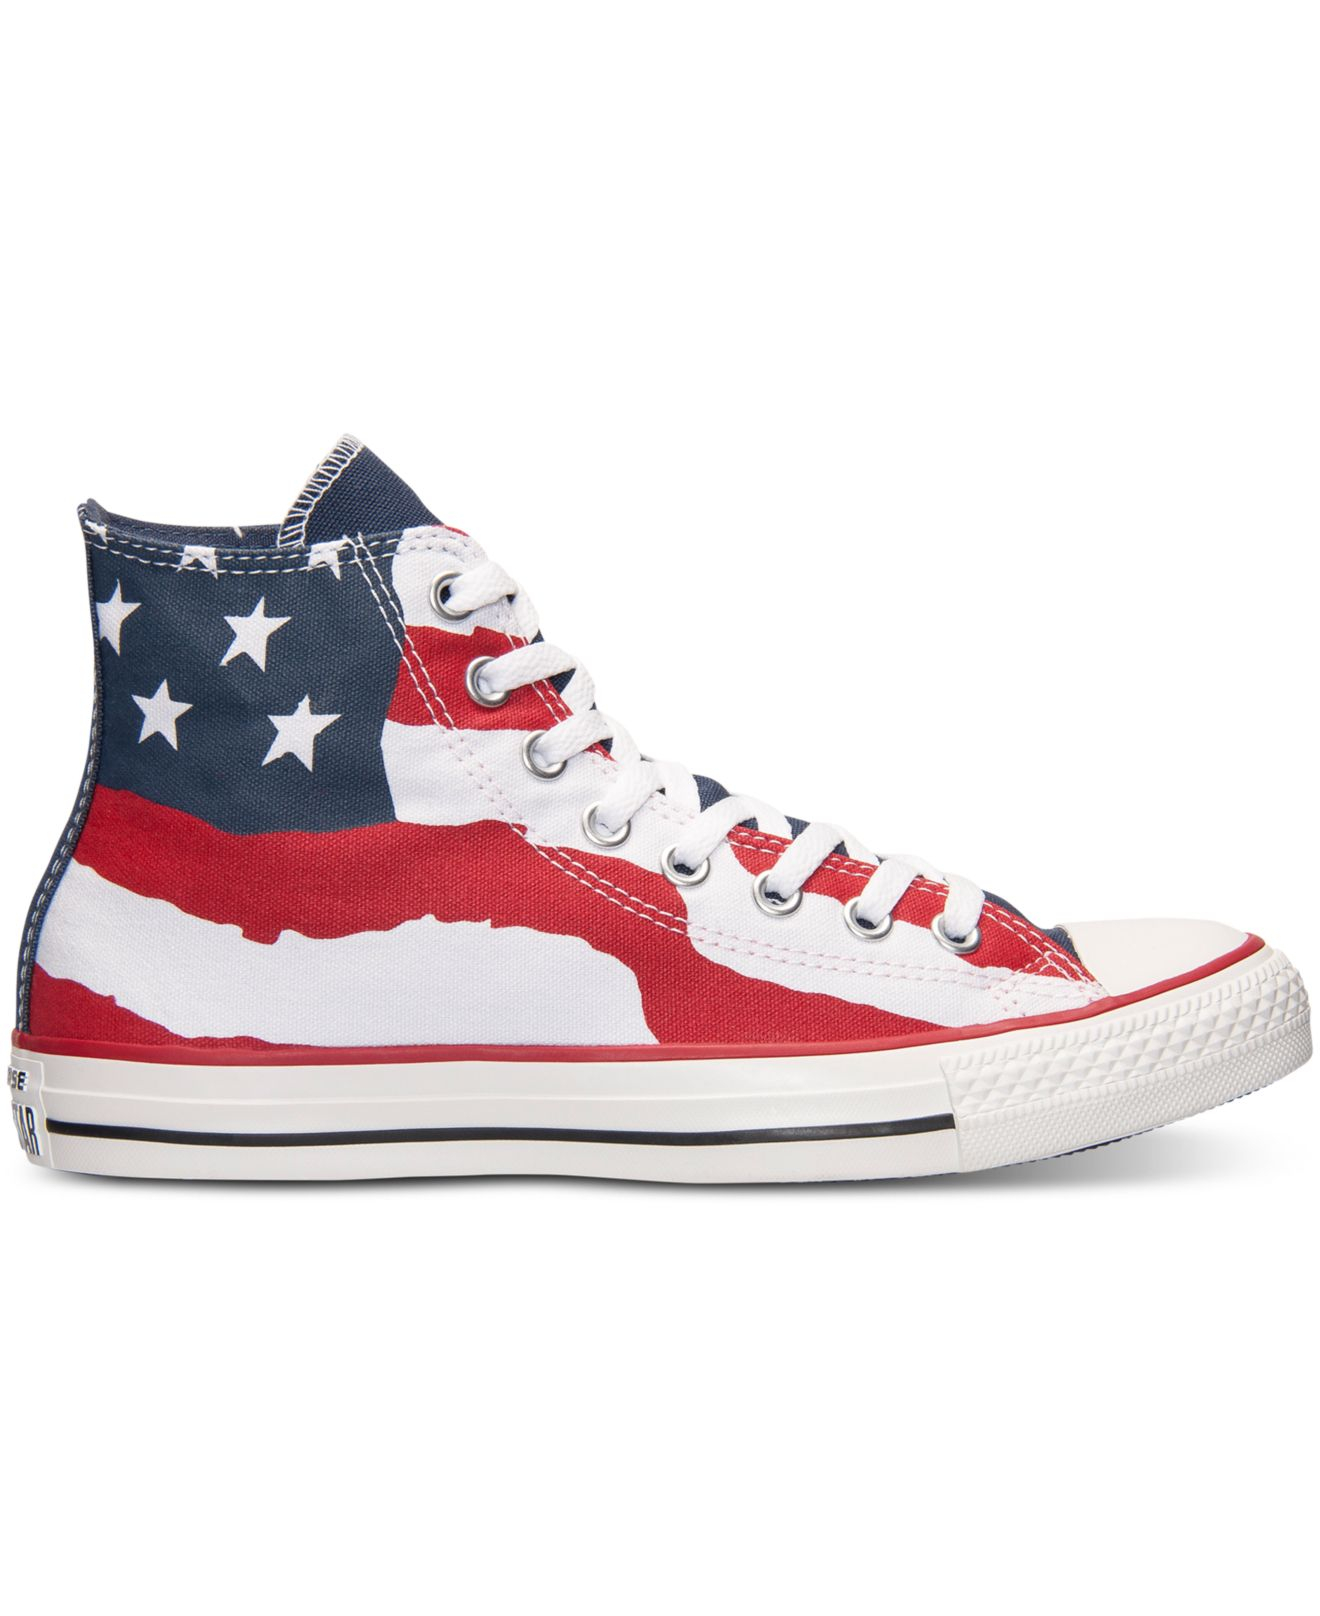 31d6fb6700c5 Lyst - Converse Men s Chuck Taylor Hi Freedom Casual Sneakers From ...